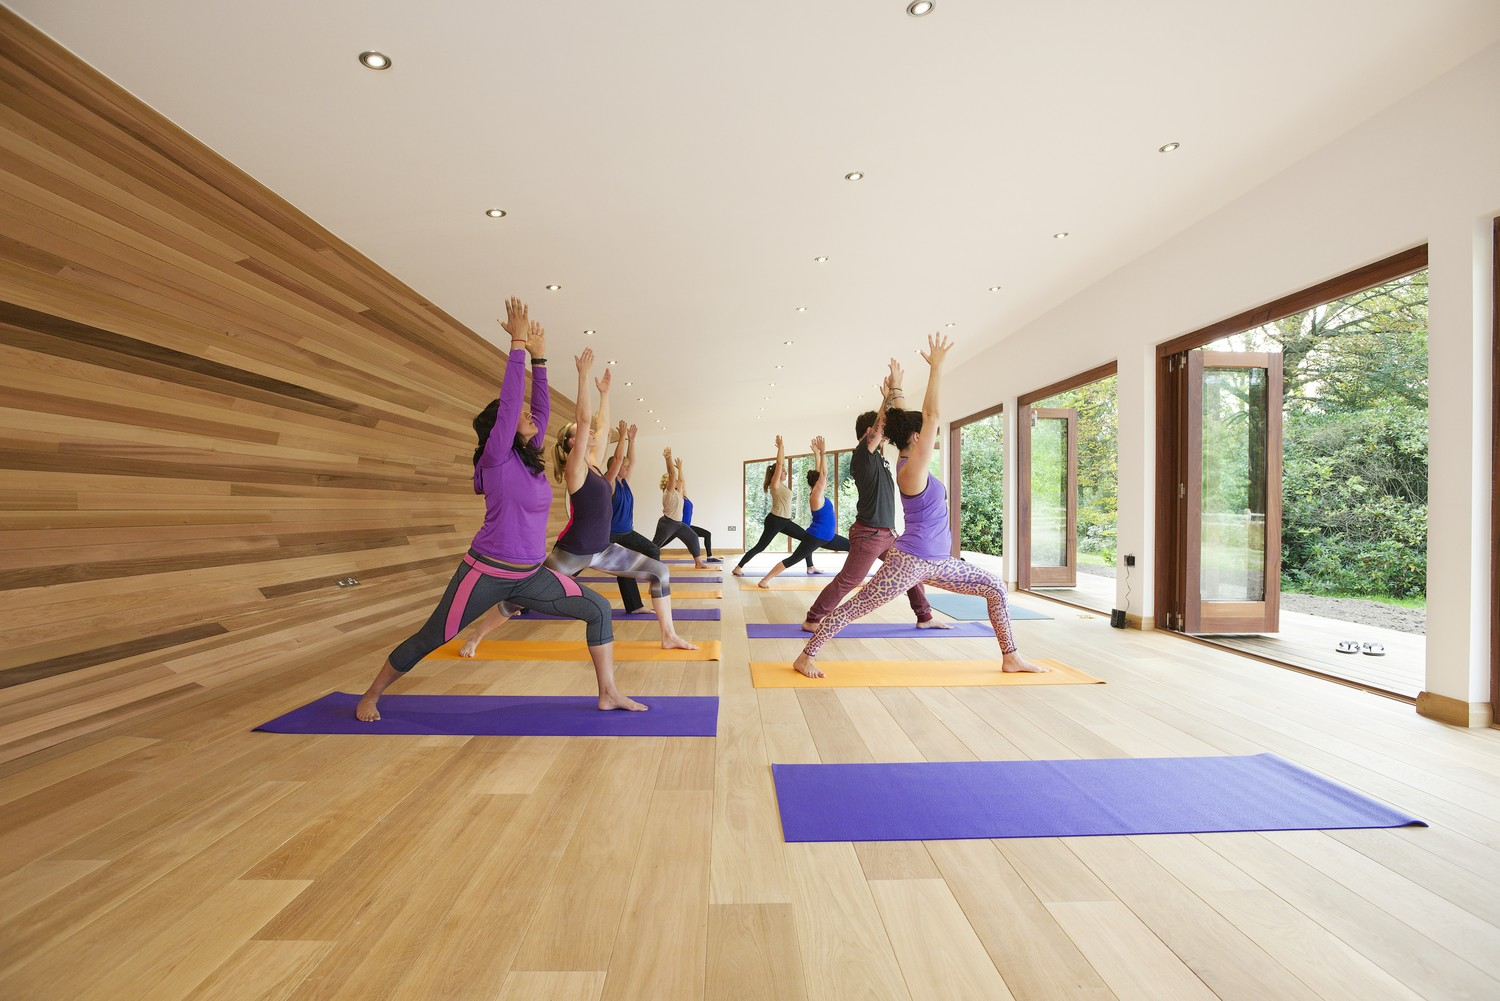 Peaceful Yoga Studio By Blue Forest (3)